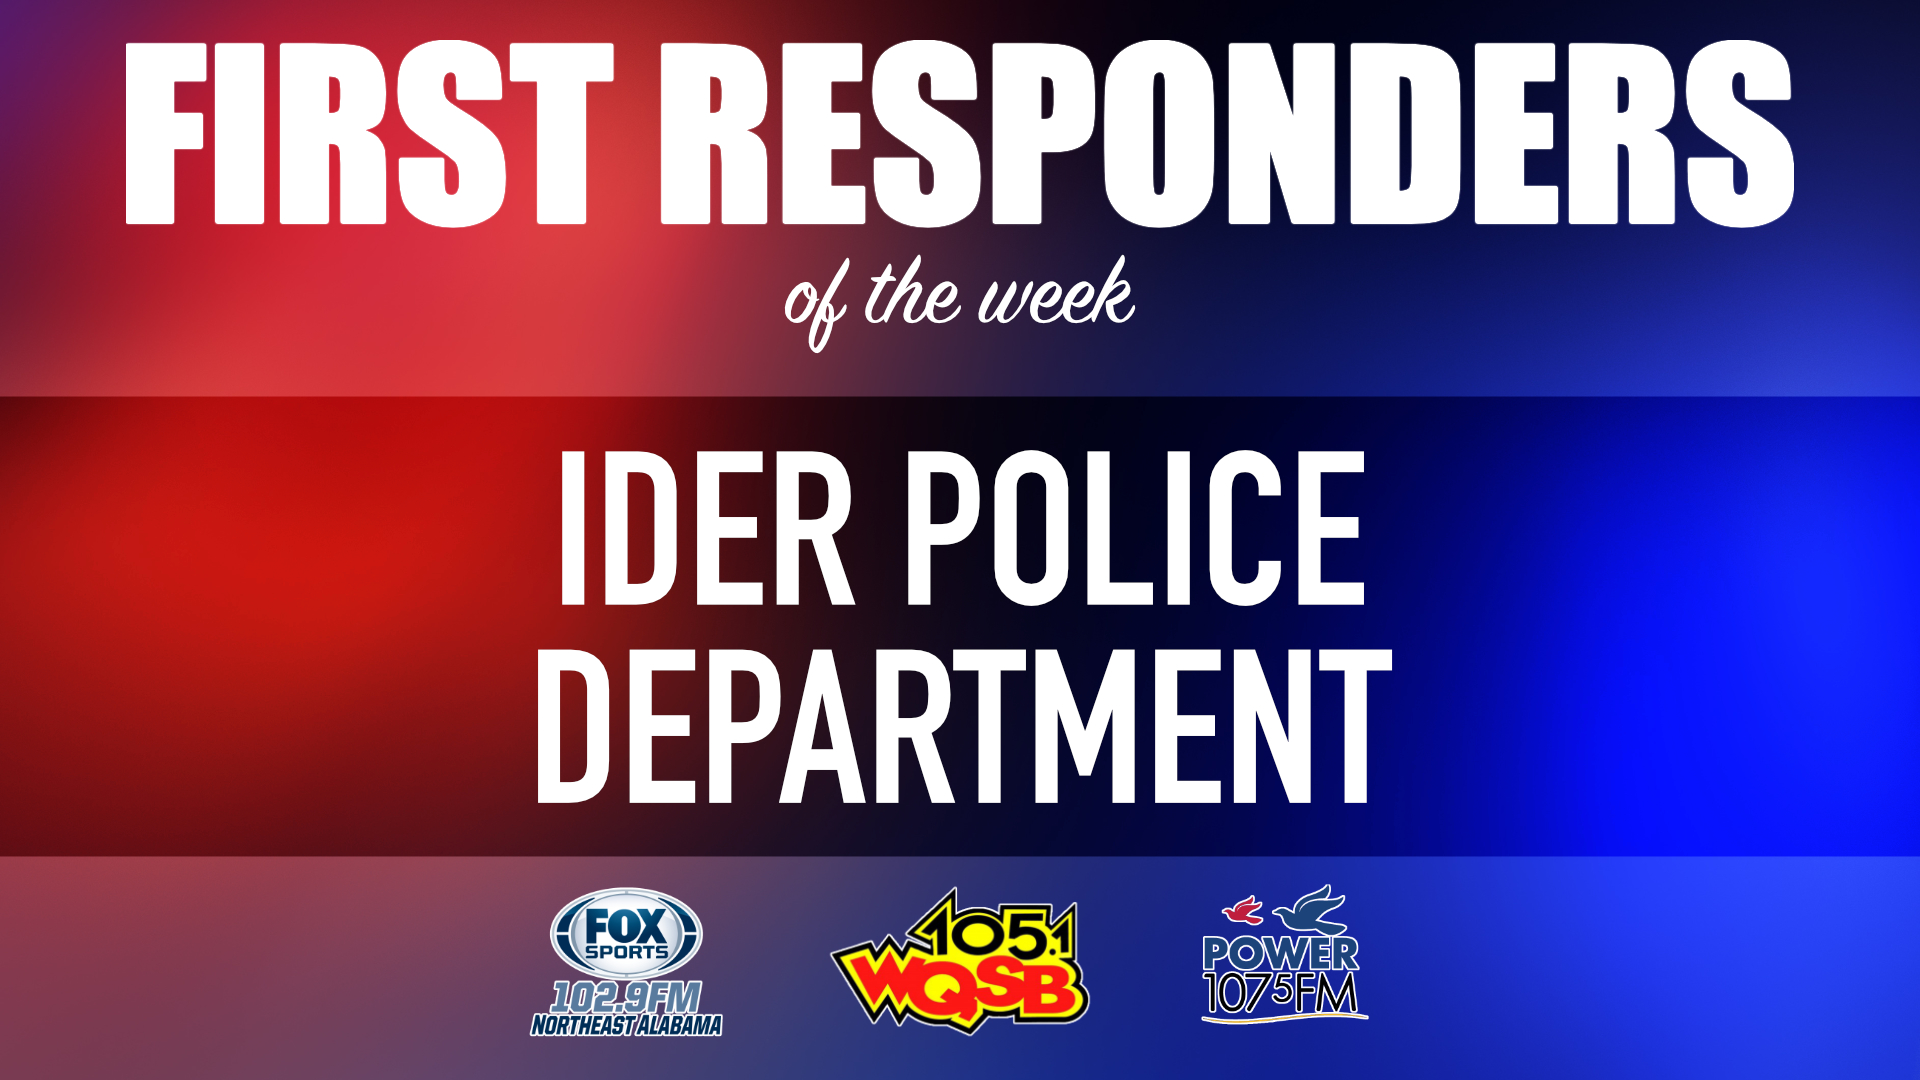 WQSB First Responders of the Week 2021 July 12th, 2021